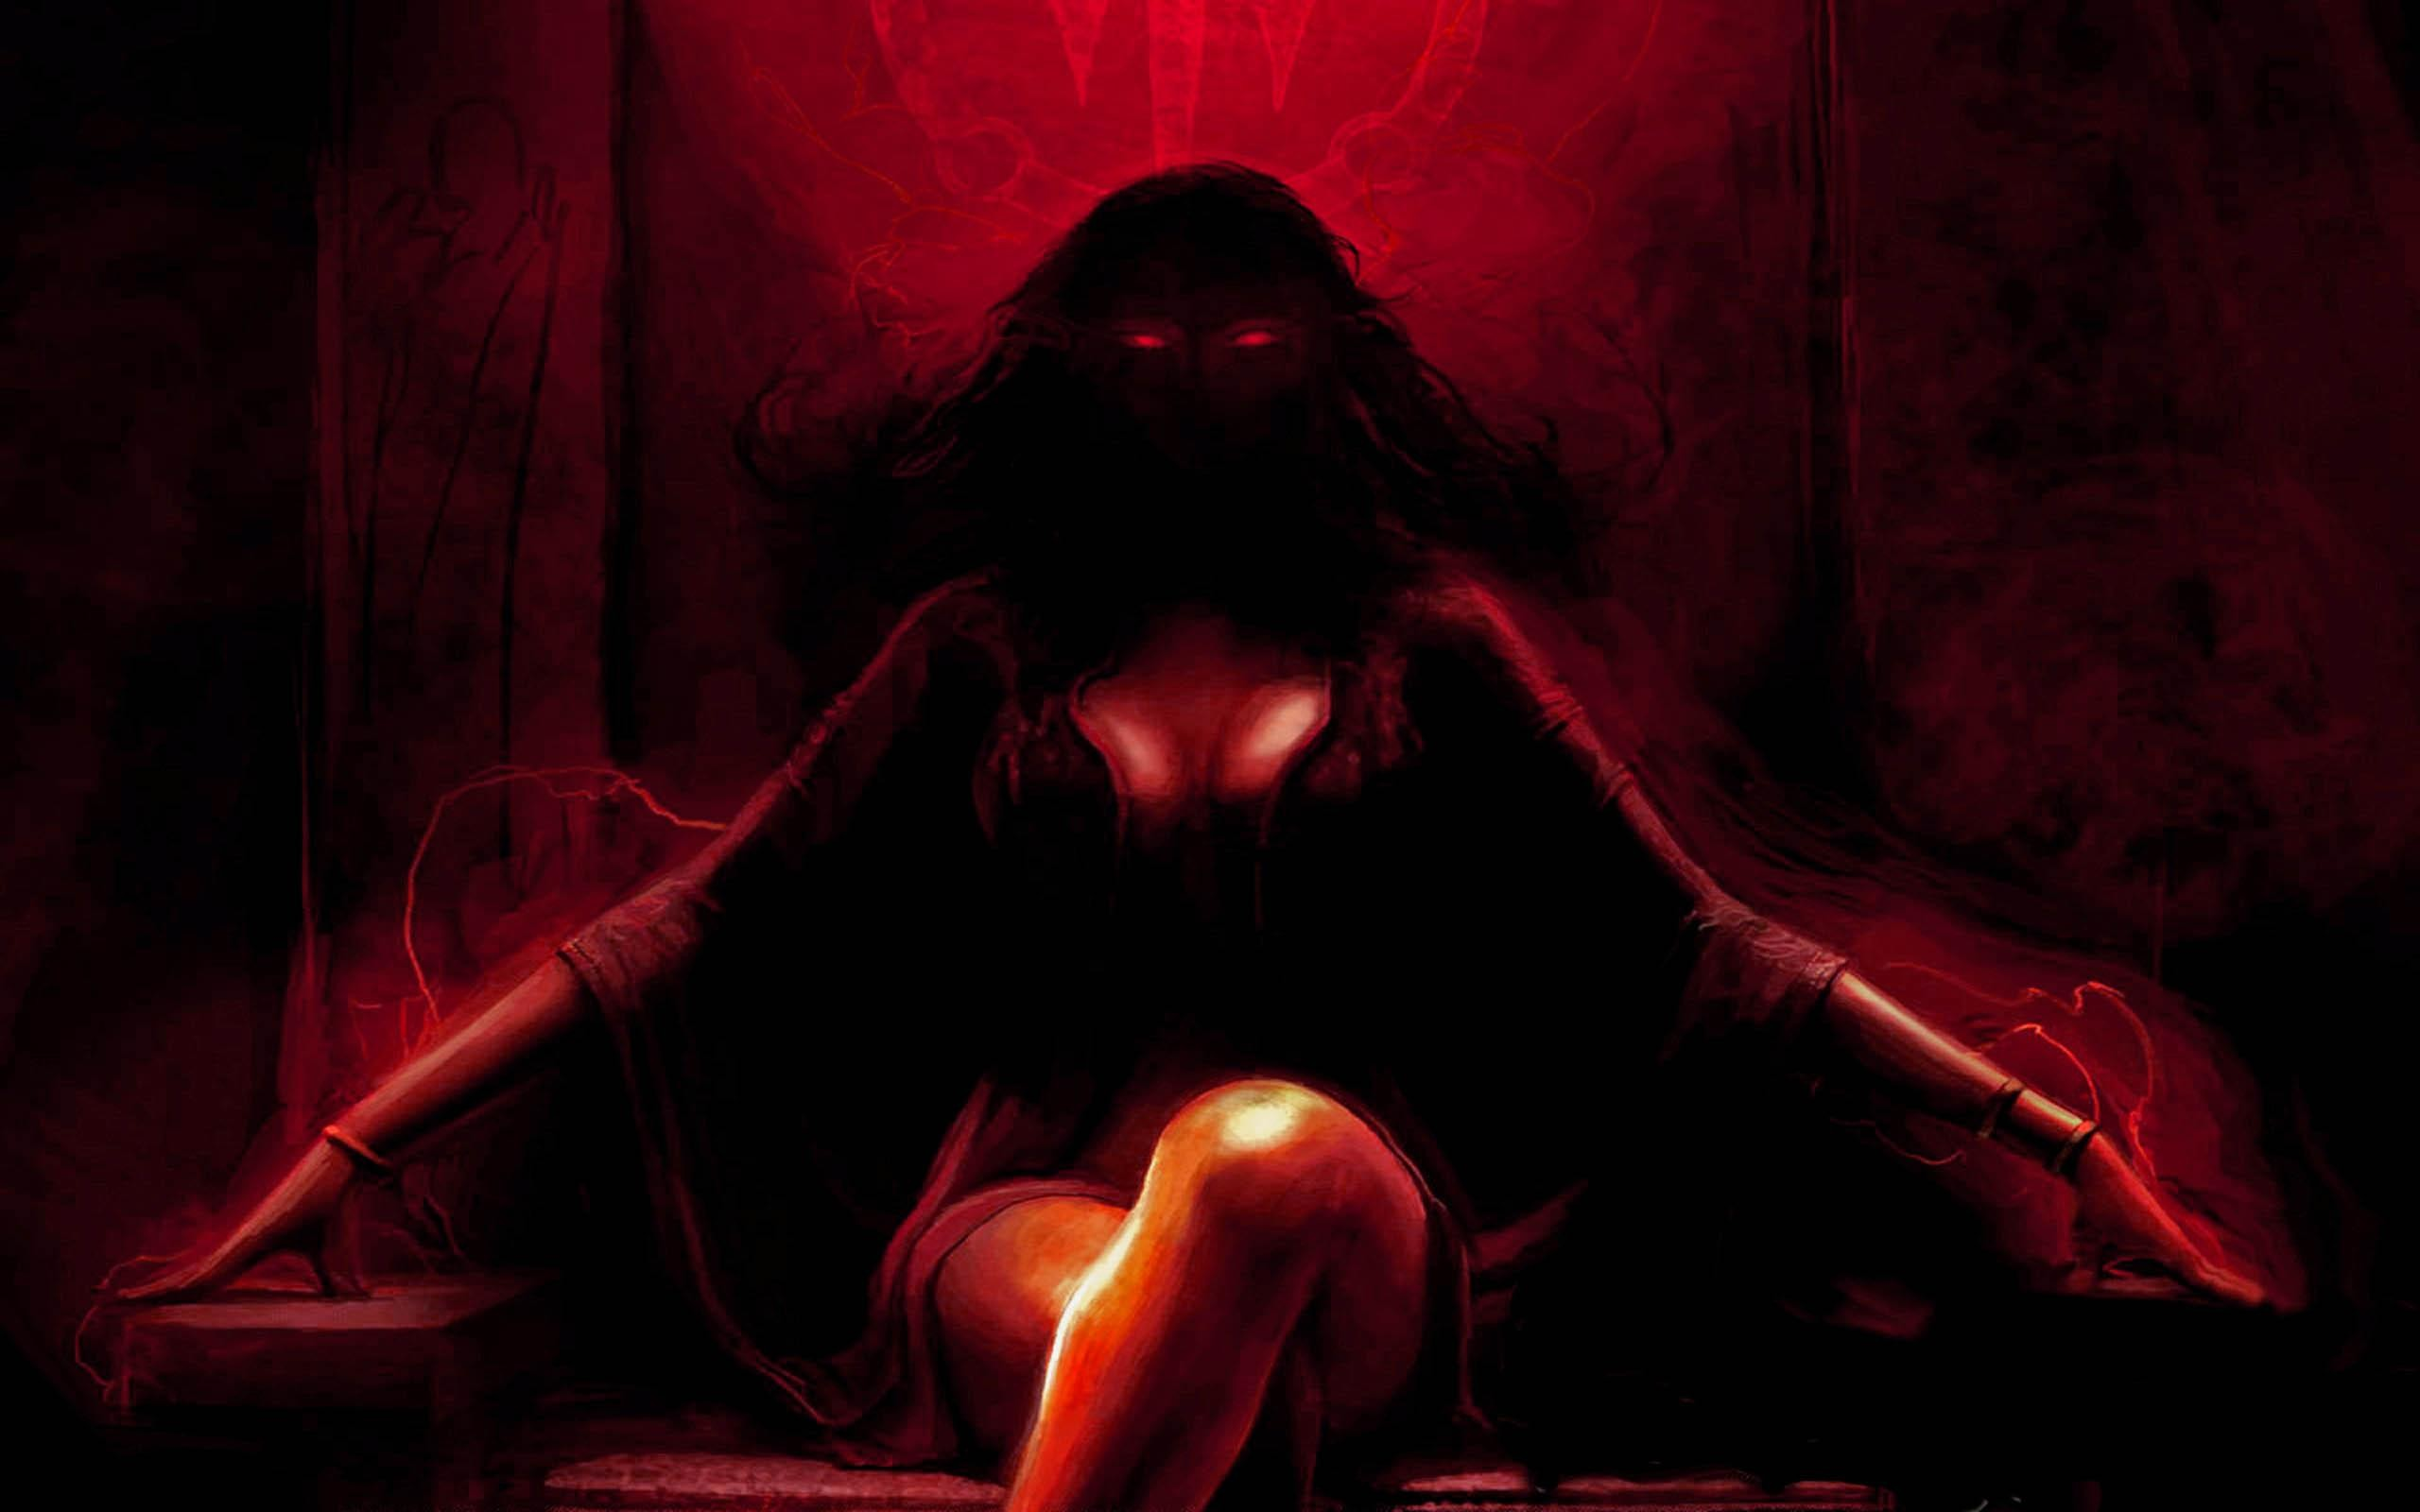 2560x1600 ... devil pic wallpapers 61 wallpapers hd wallpapers ...